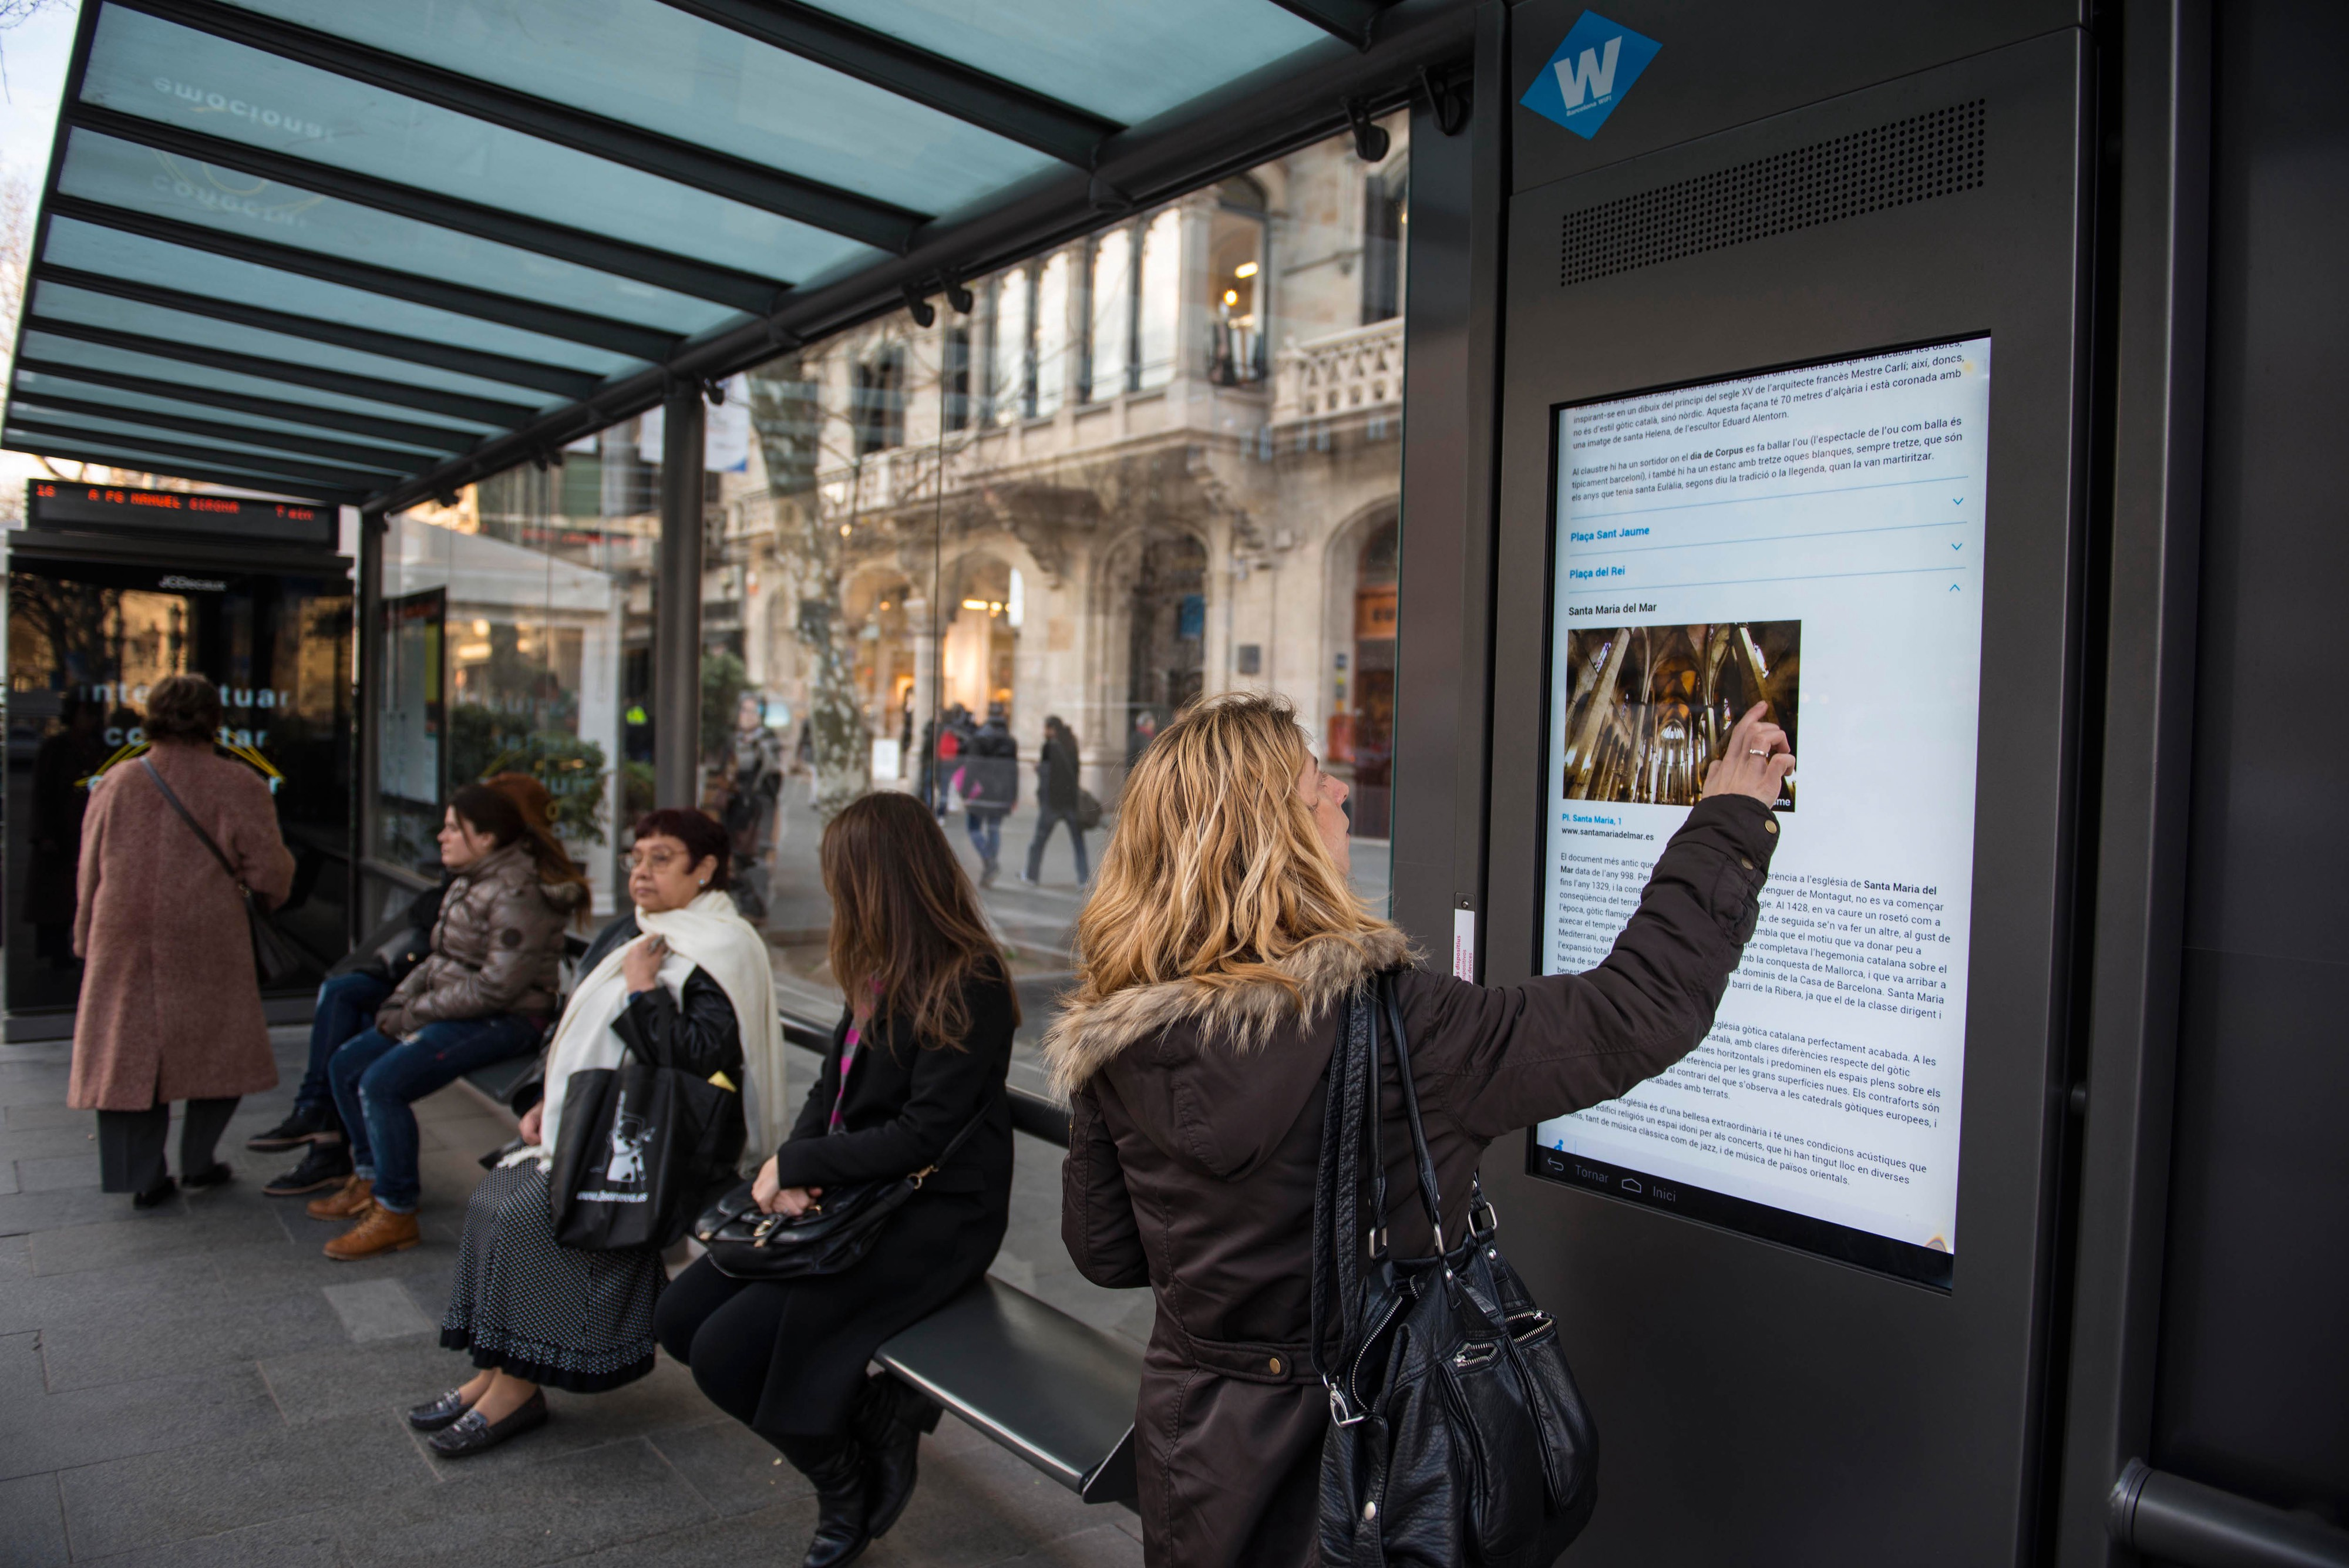 A woman in a bus shelter in Barcelona, Spain, reads a video screen for information.